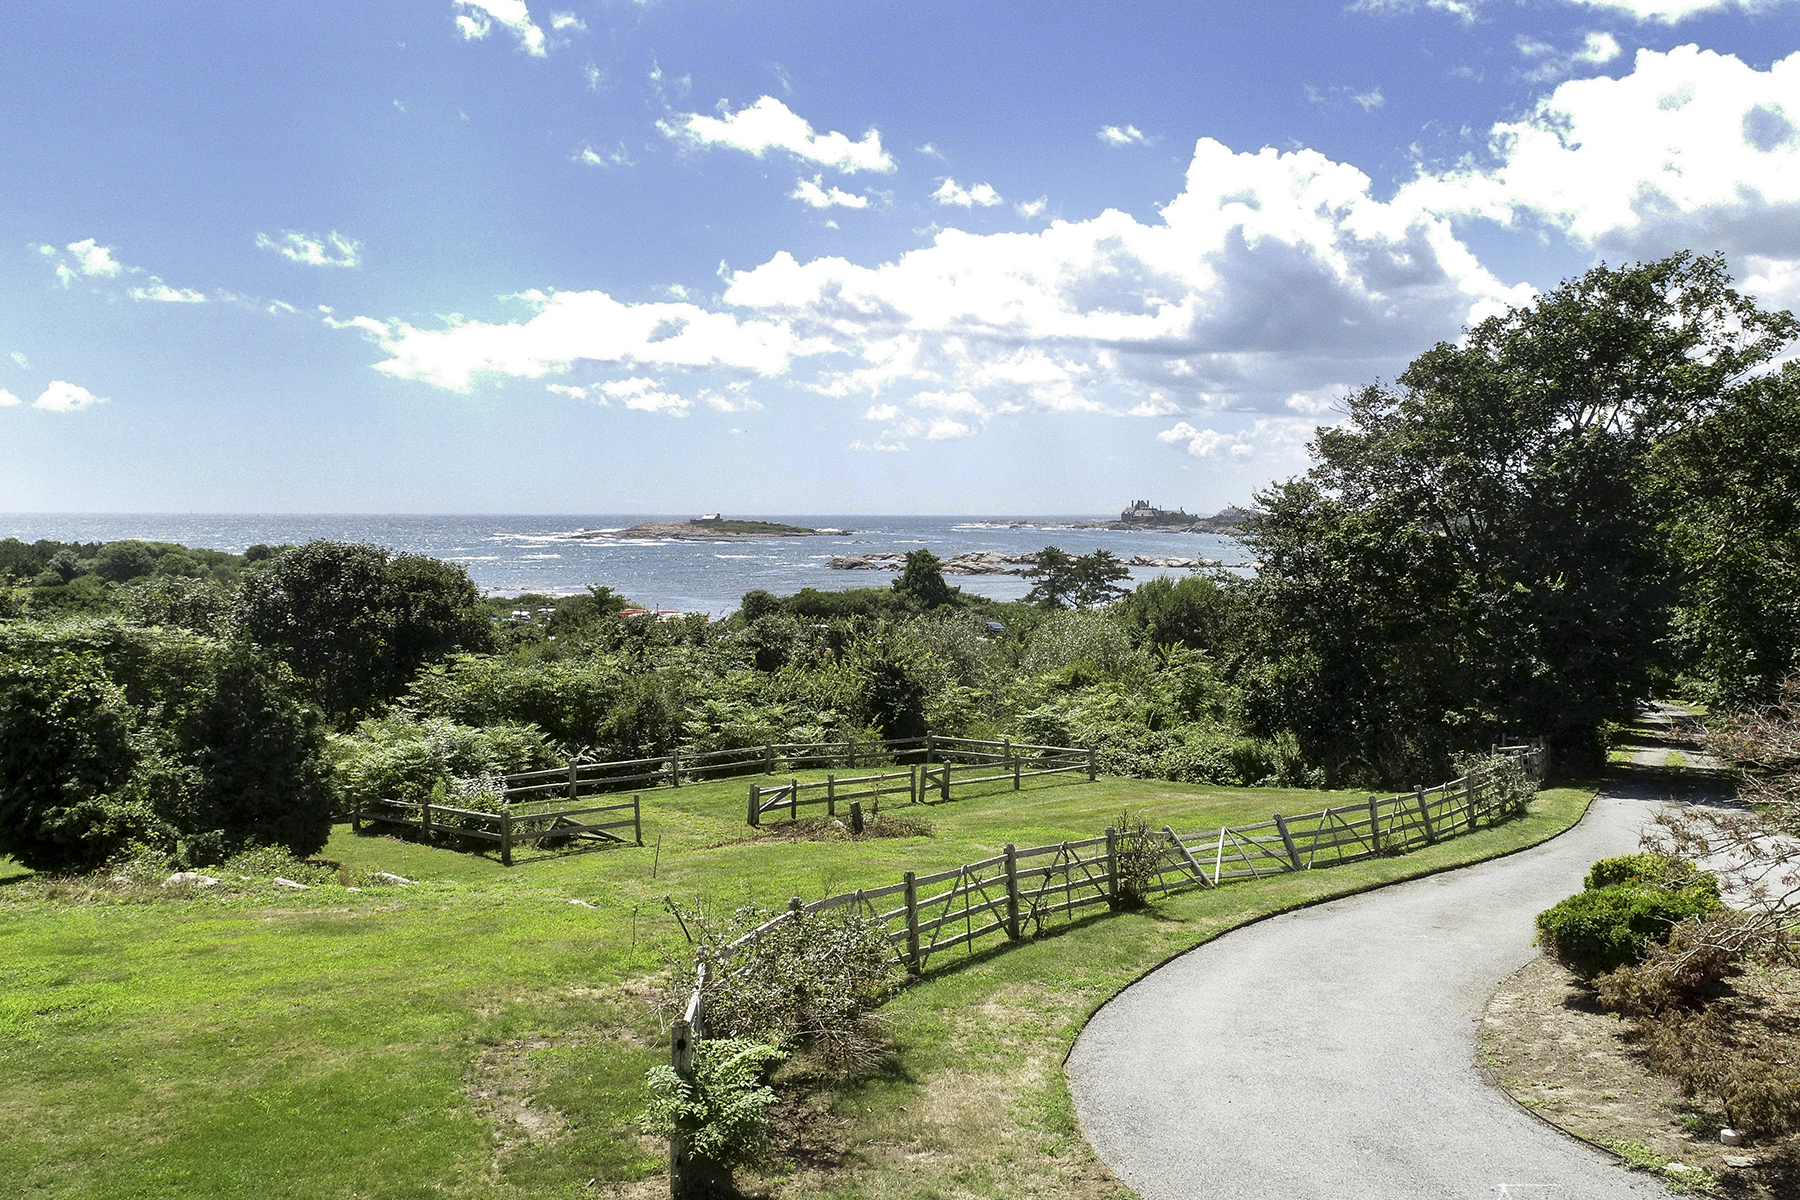 Single Family Homes for Sale at Ocean Drive Rocky Farm 121 Ocean Avenue Newport, Rhode Island 02840 United States